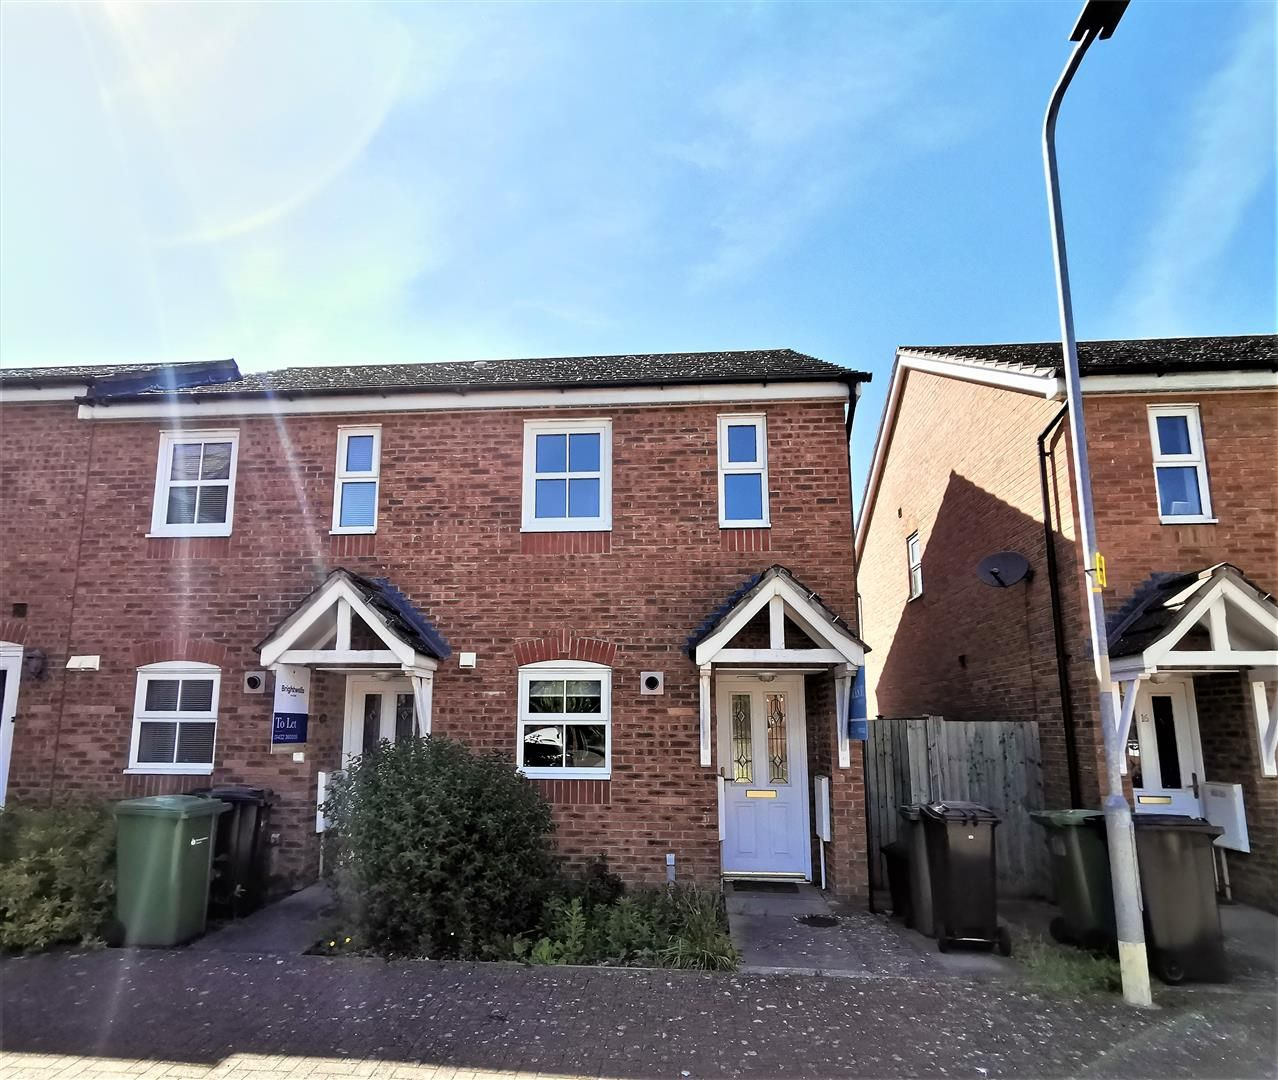 2 bed end-of-terrace for sale 1